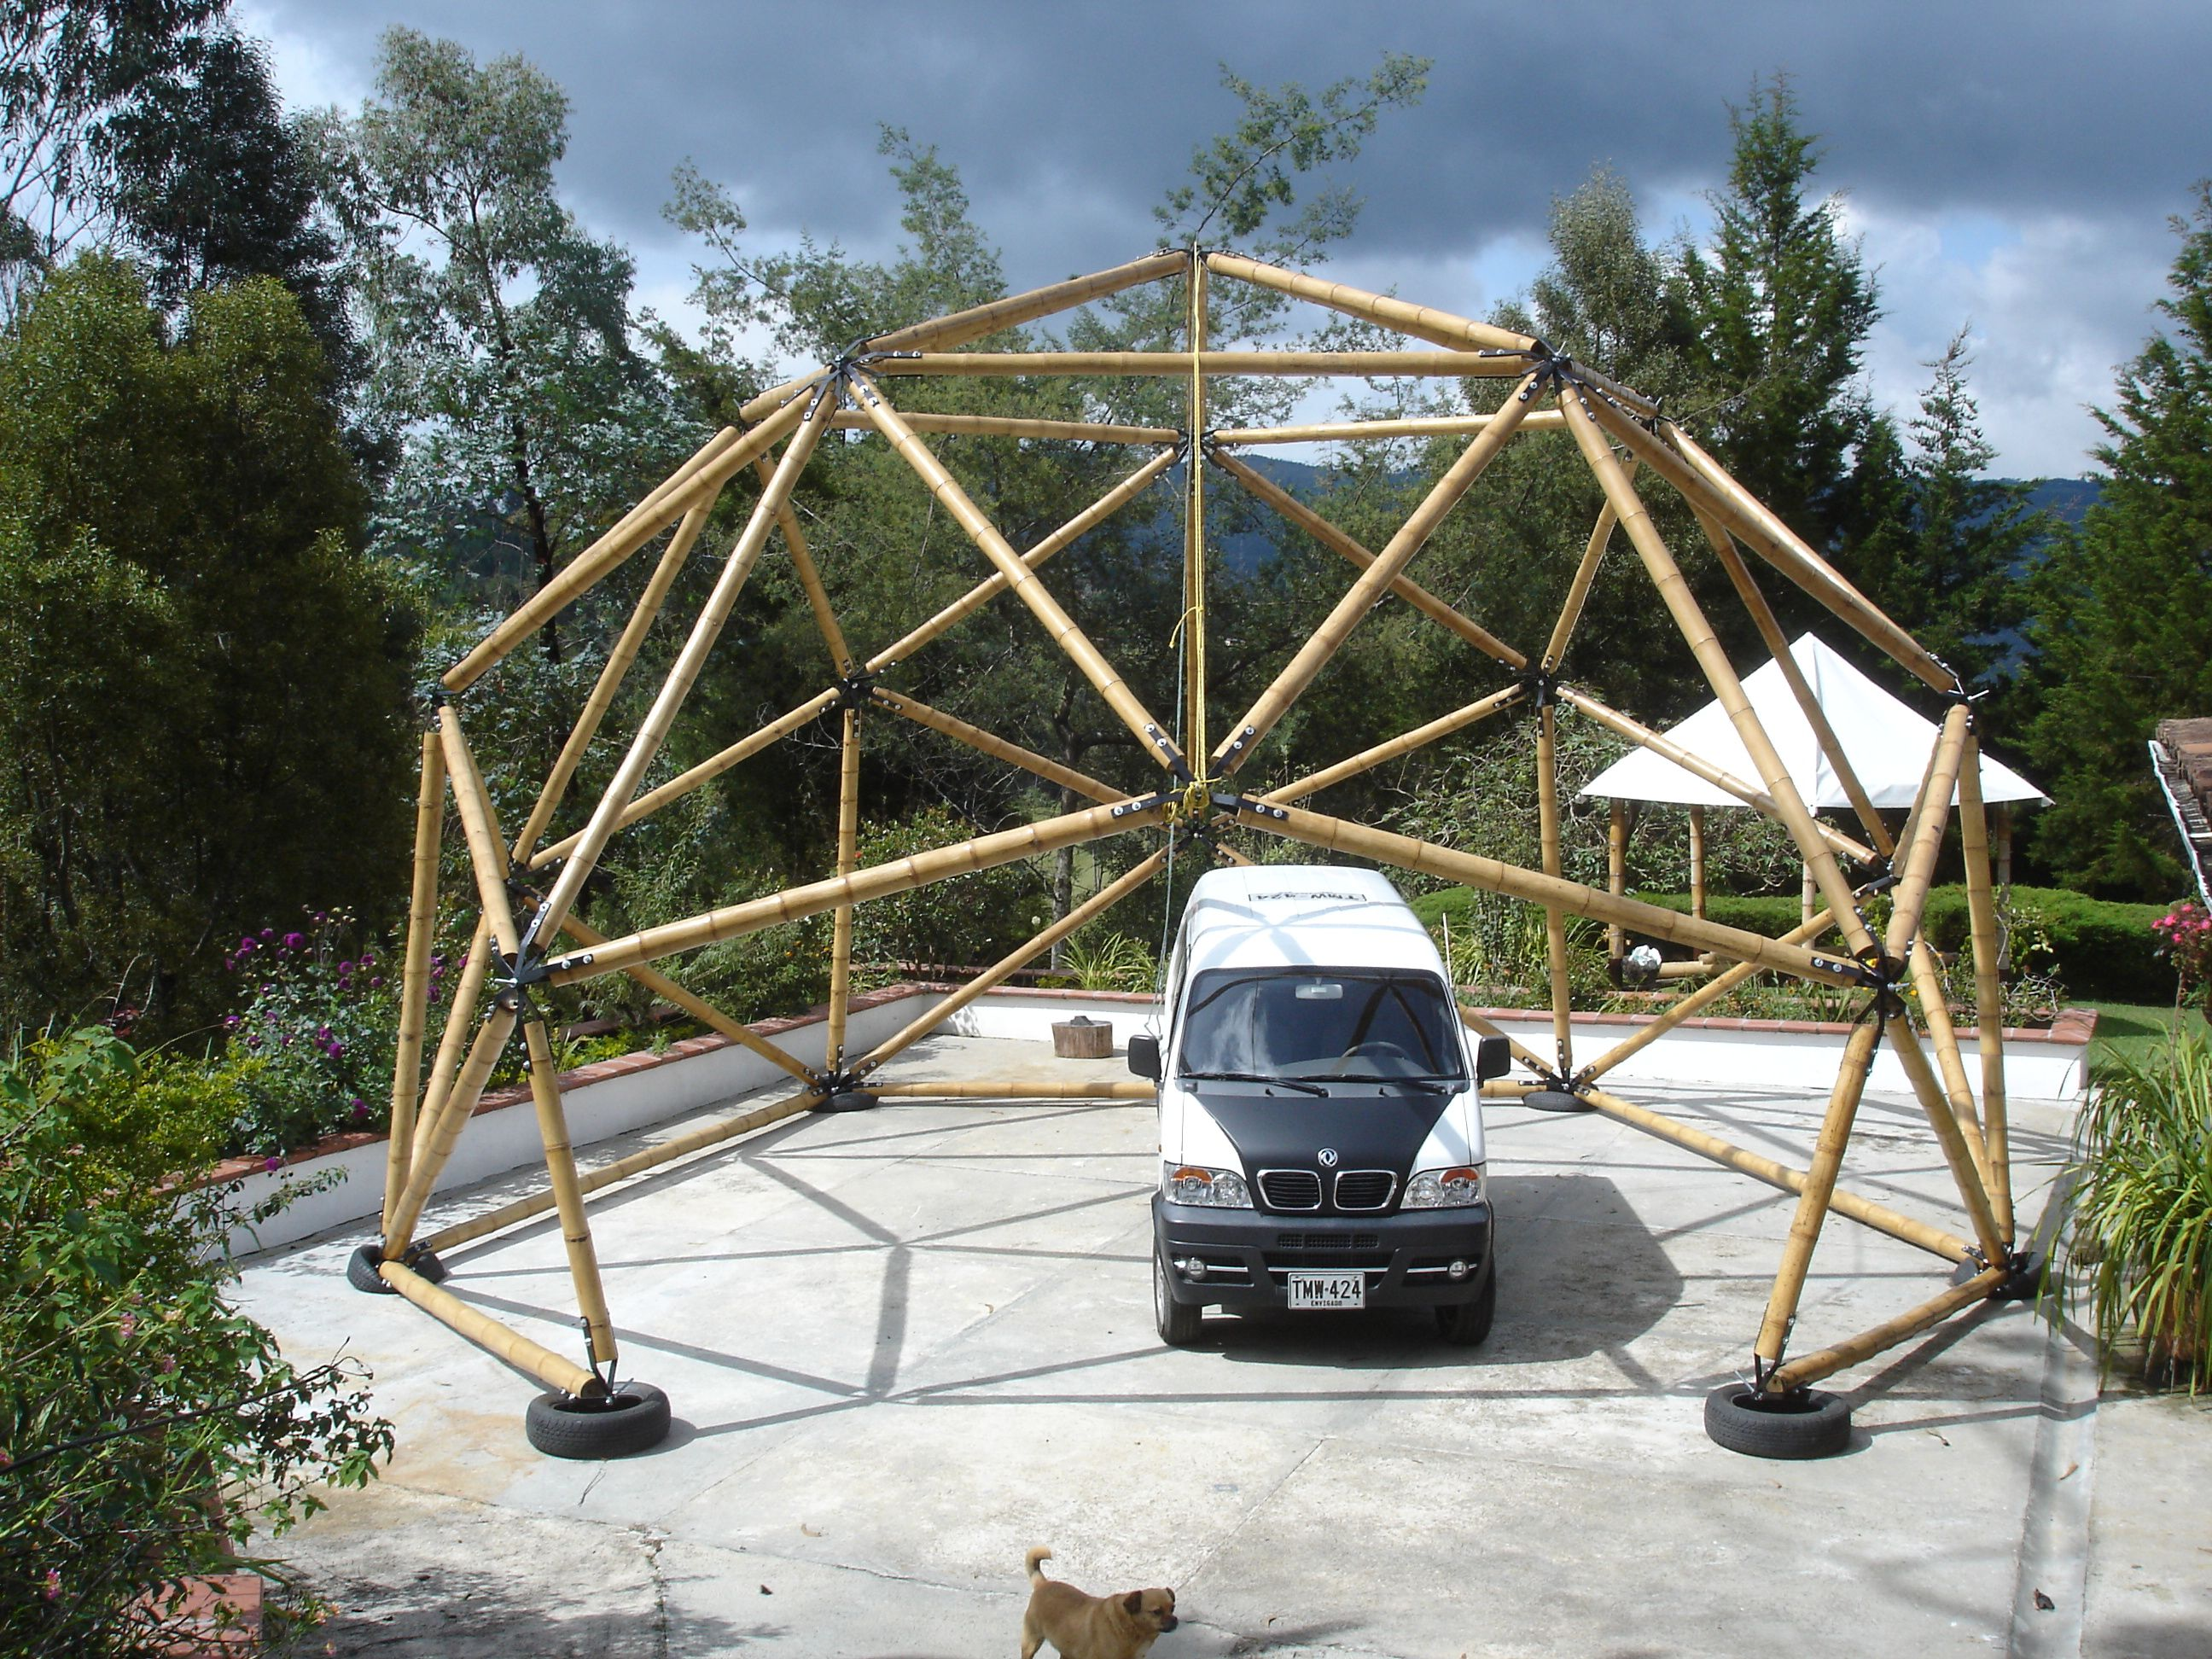 nature tech geodesic dome in bamboo guadua by geopues palakas ubik tallertortuga andr swalker. Black Bedroom Furniture Sets. Home Design Ideas